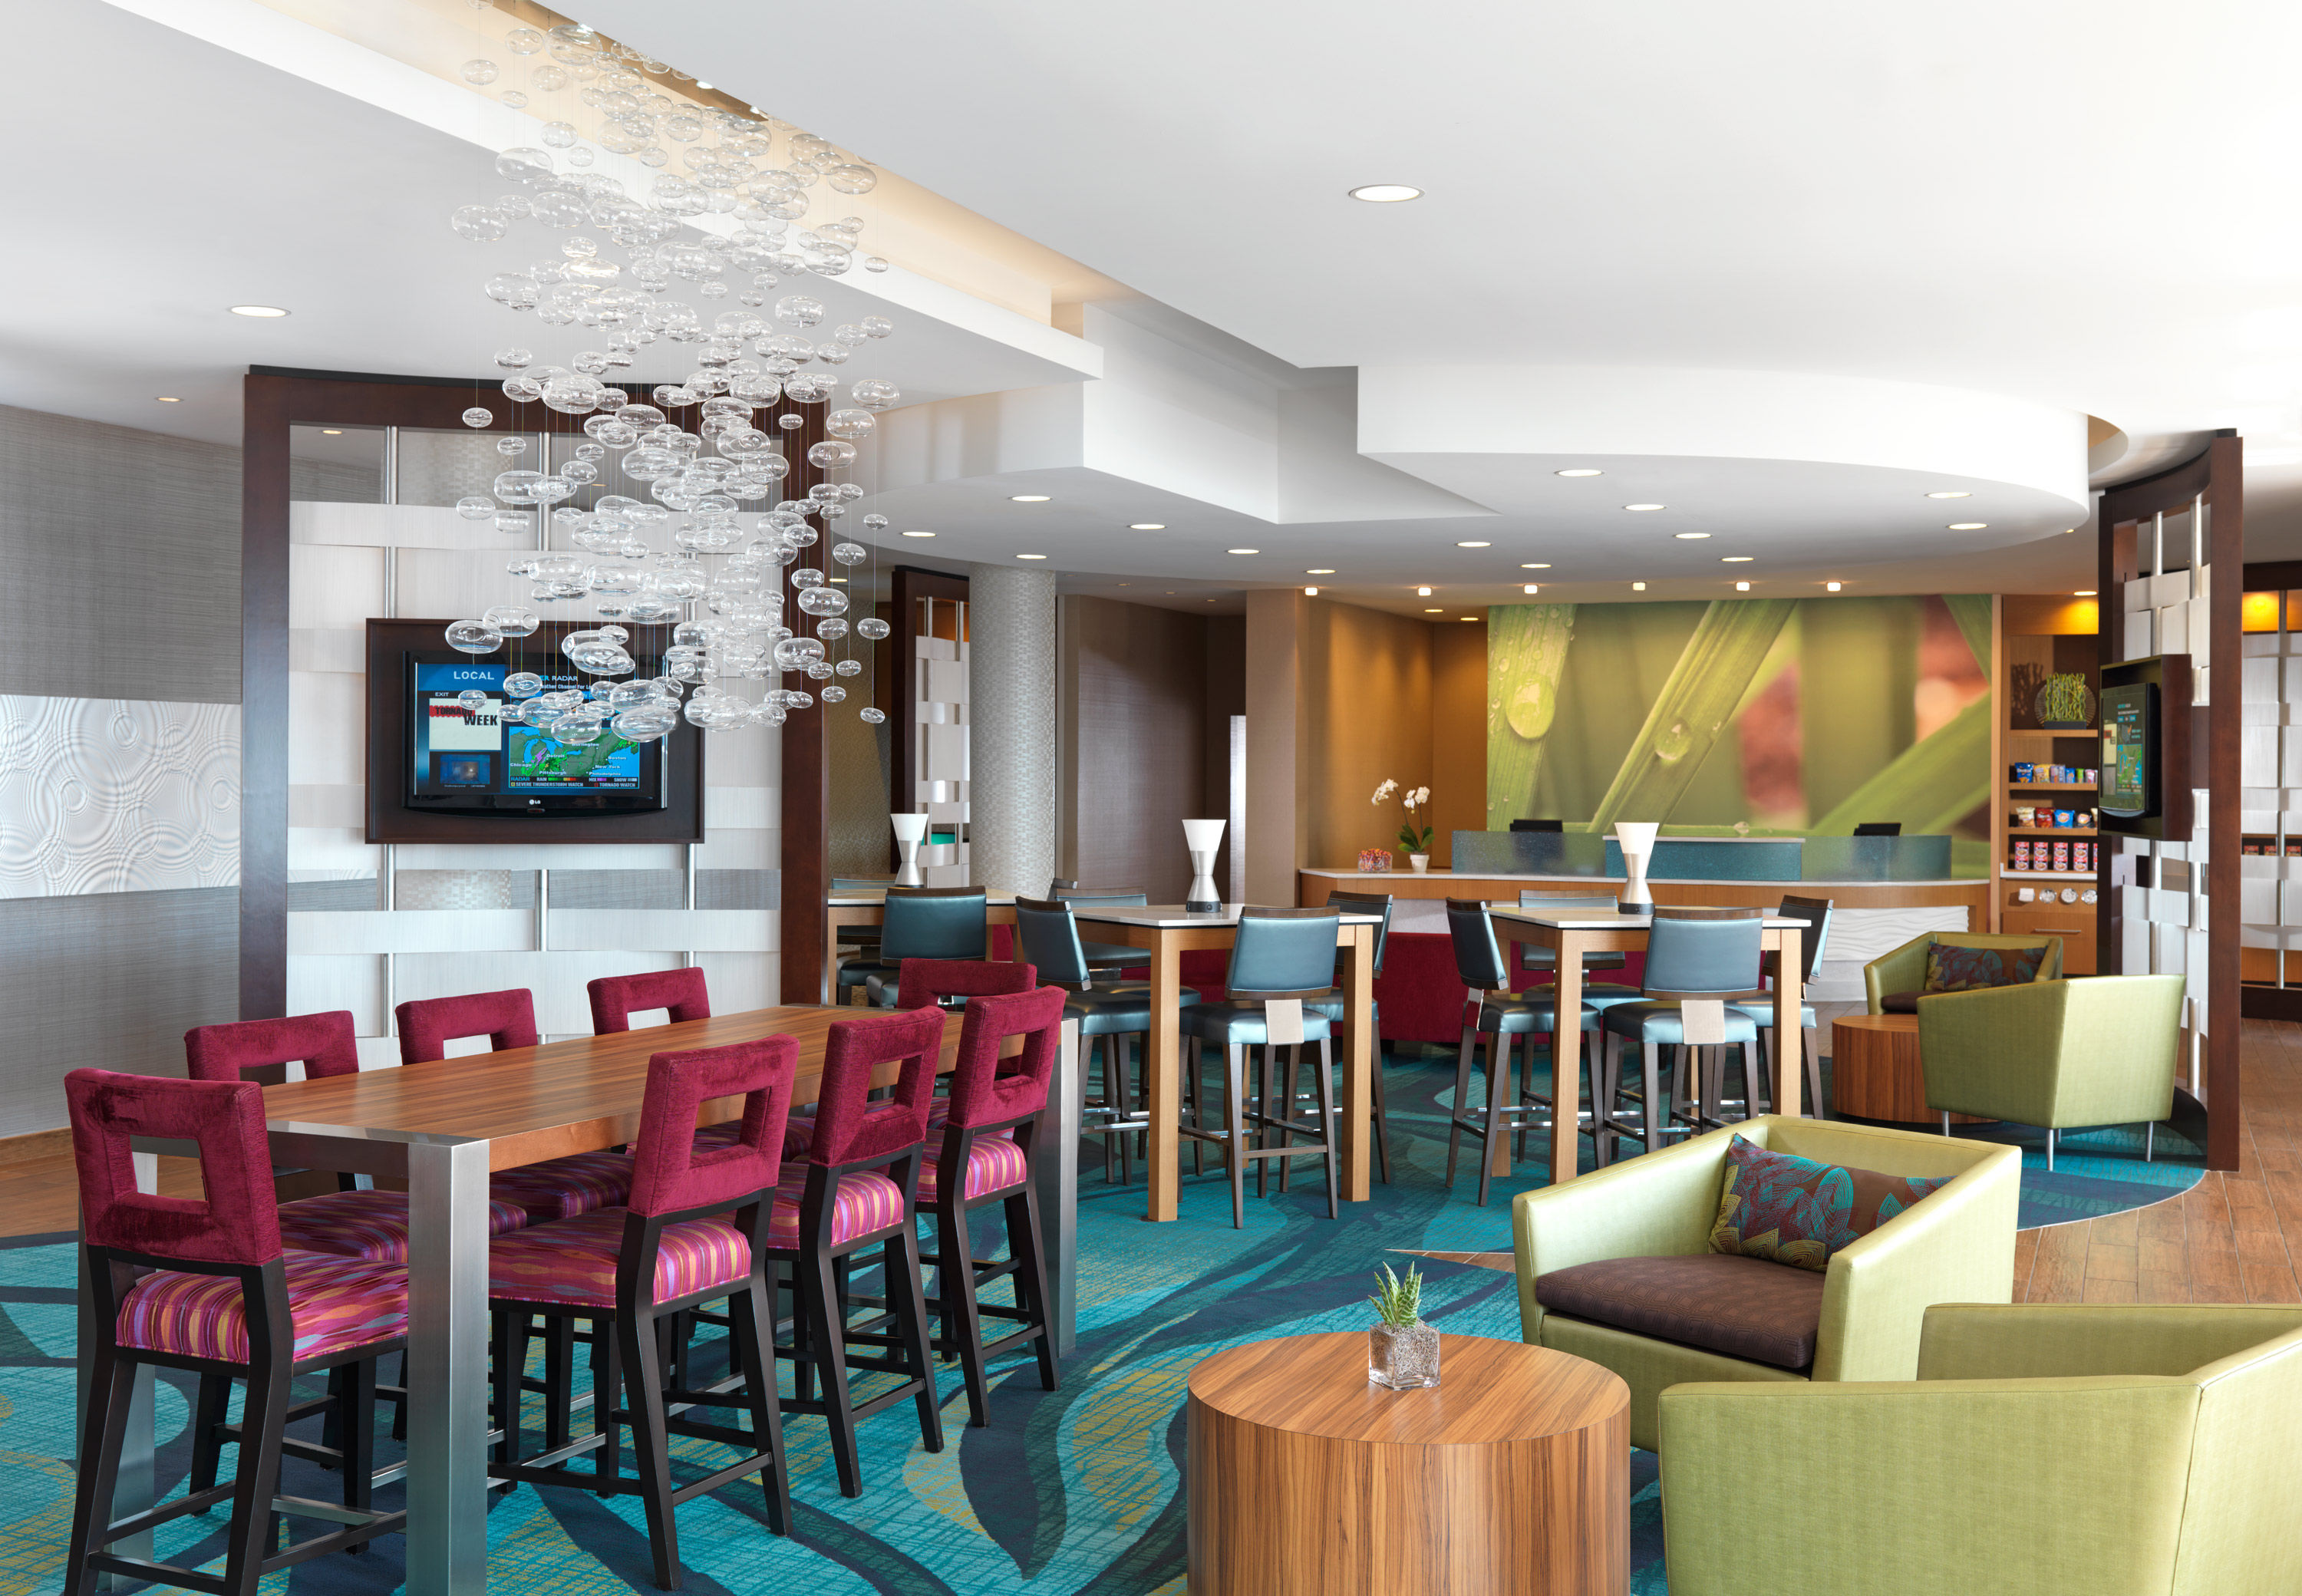 SpringHill Suites by Marriott Buffalo Airport image 10